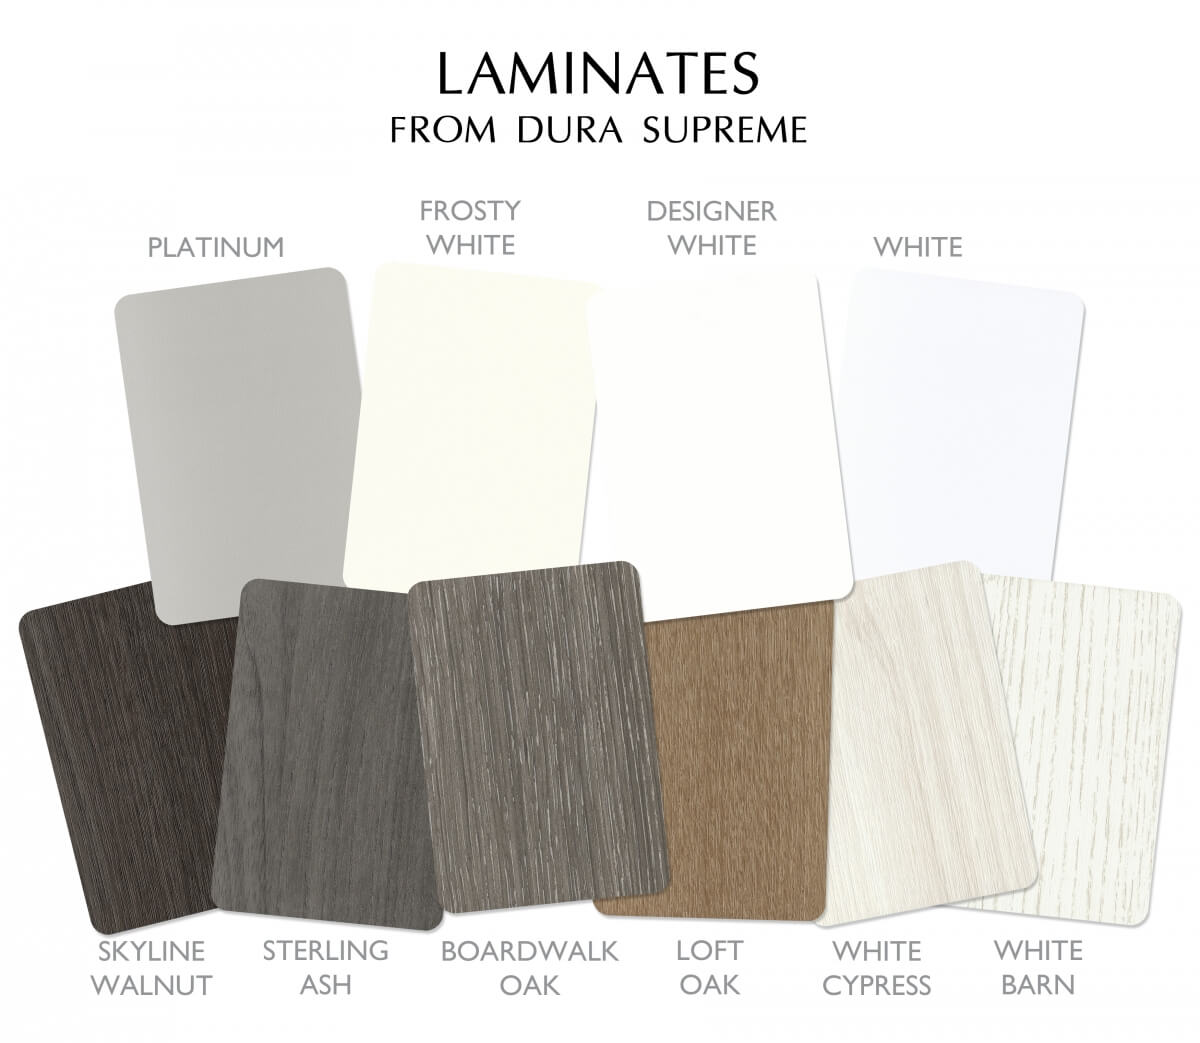 Laminates from Dura Supreme Cabinetry. Solid colos and textured wood grains for Laminate Cabinets.